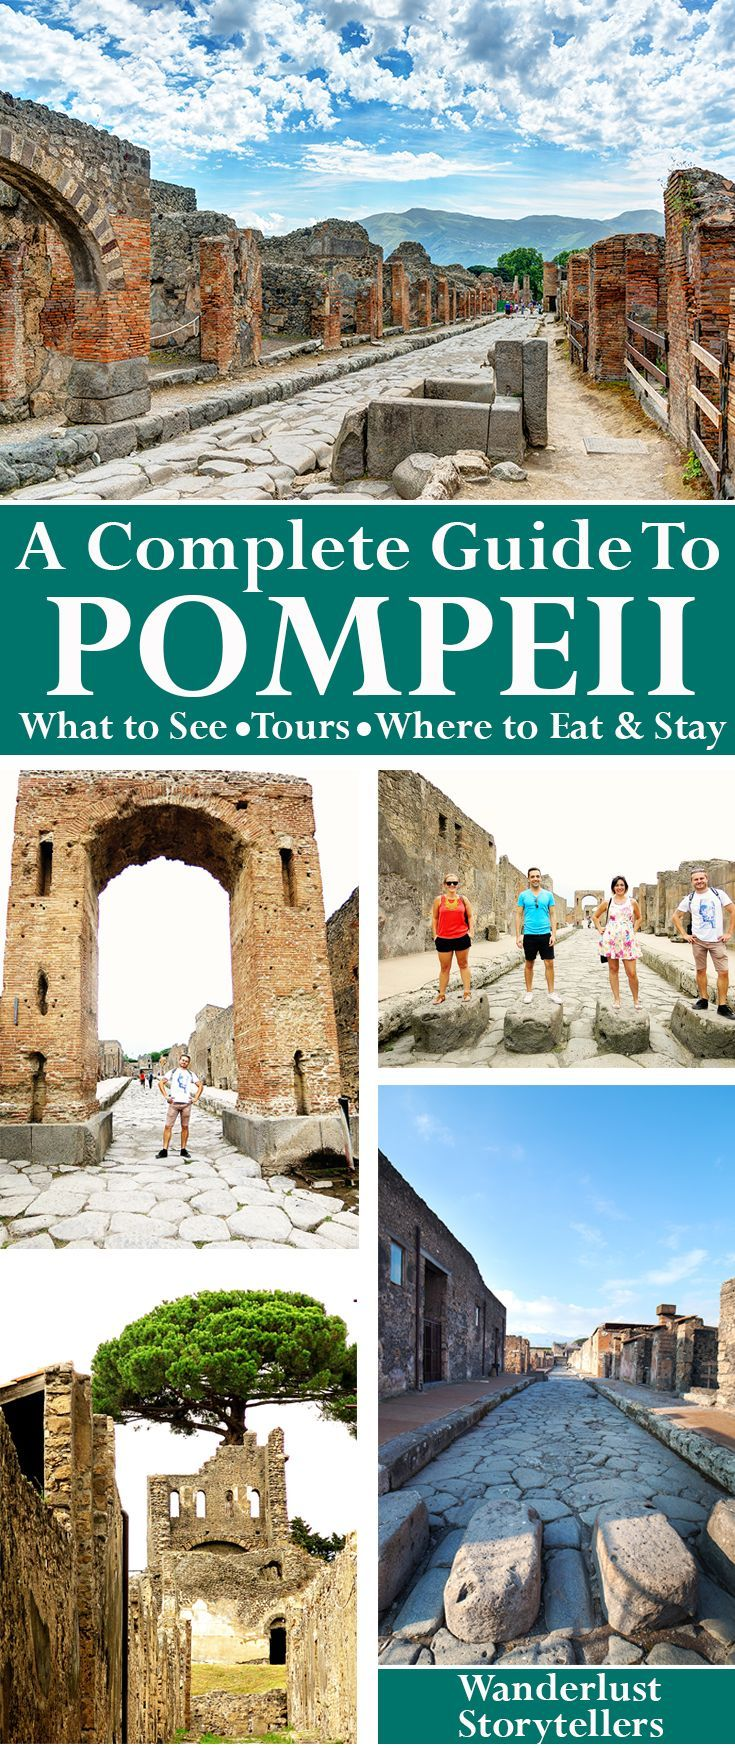 An 'All you Need to Know' travel guide for your visit to Pompeii in Italy! What to see, where to eat, tours to take, where to stay and how to get there! >>>>>>>>>>>>>>>>>>>>>>>>>>>>>>>>>>> Visit Pompeii Italy   Pompeii Ruins   Pompeii Volcano   Pompeii Brothel   Pompeii Travel   Pompeii Mt Vesuvius   Pompeii Activities